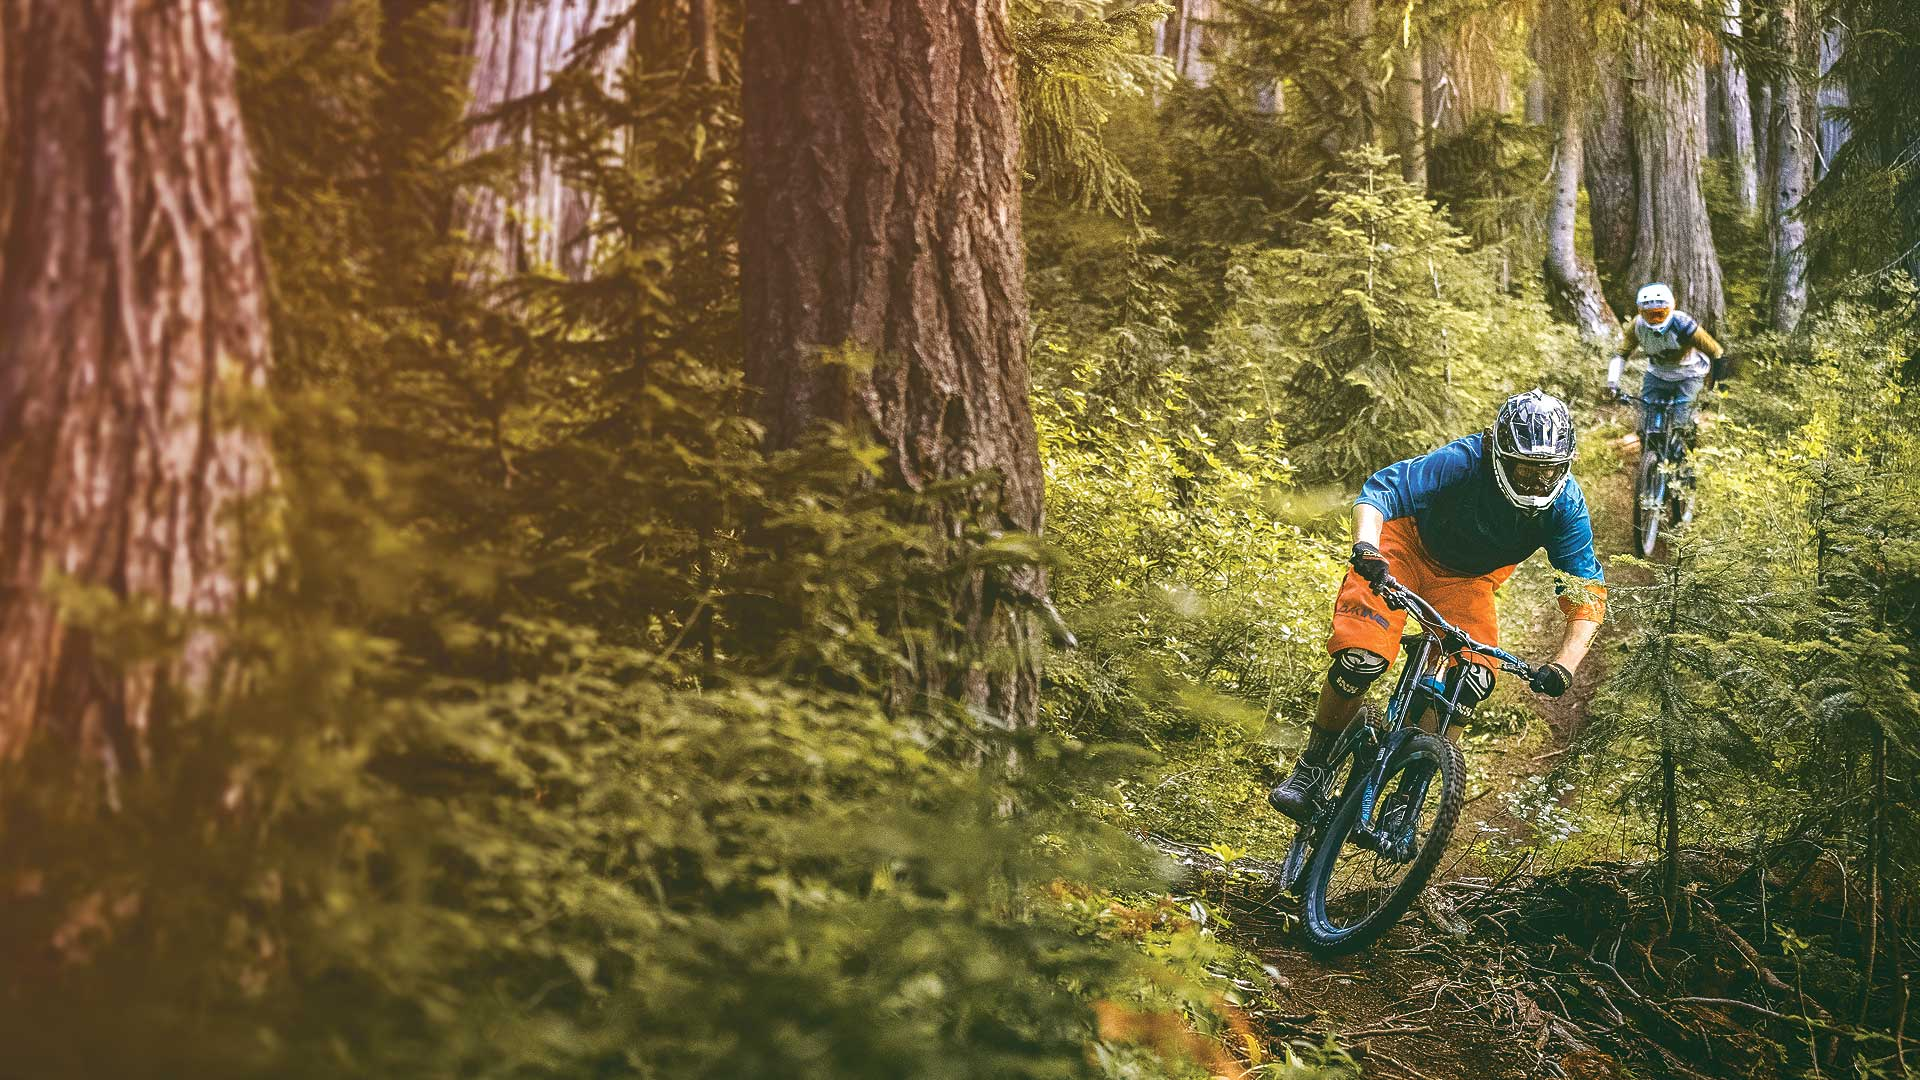 Whistler Mountain Bike Park to open to riders for the 2016 season on May 20